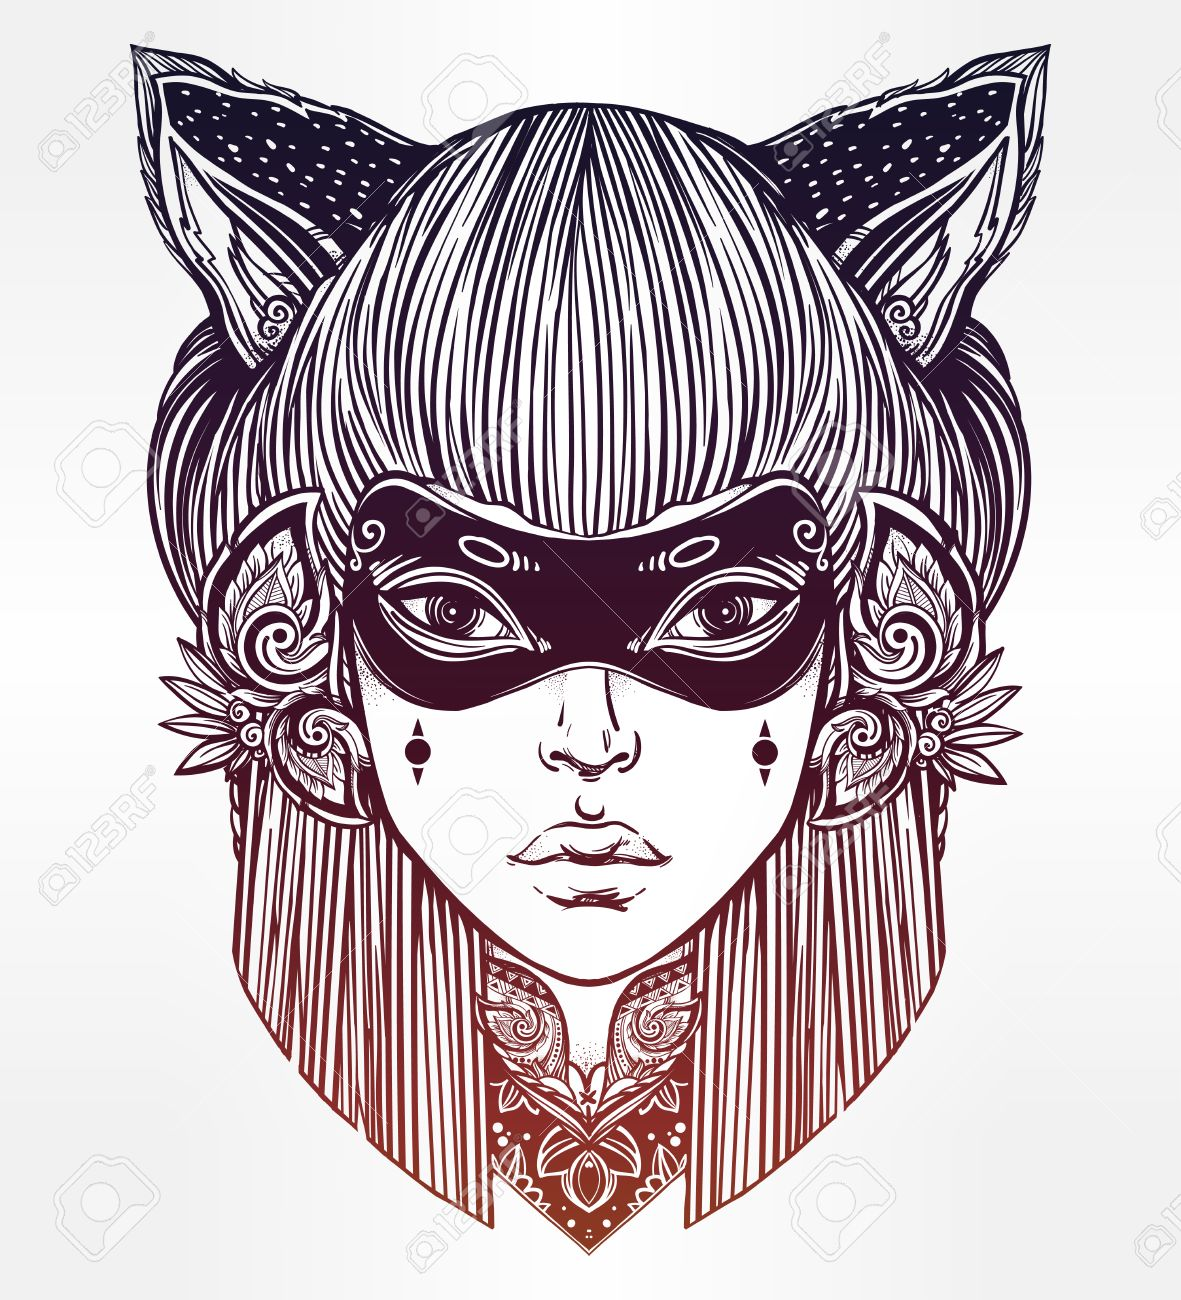 1181x1300 Hand Drawn Beautiful Artwork Of Woman In A Mask With Cat Ears